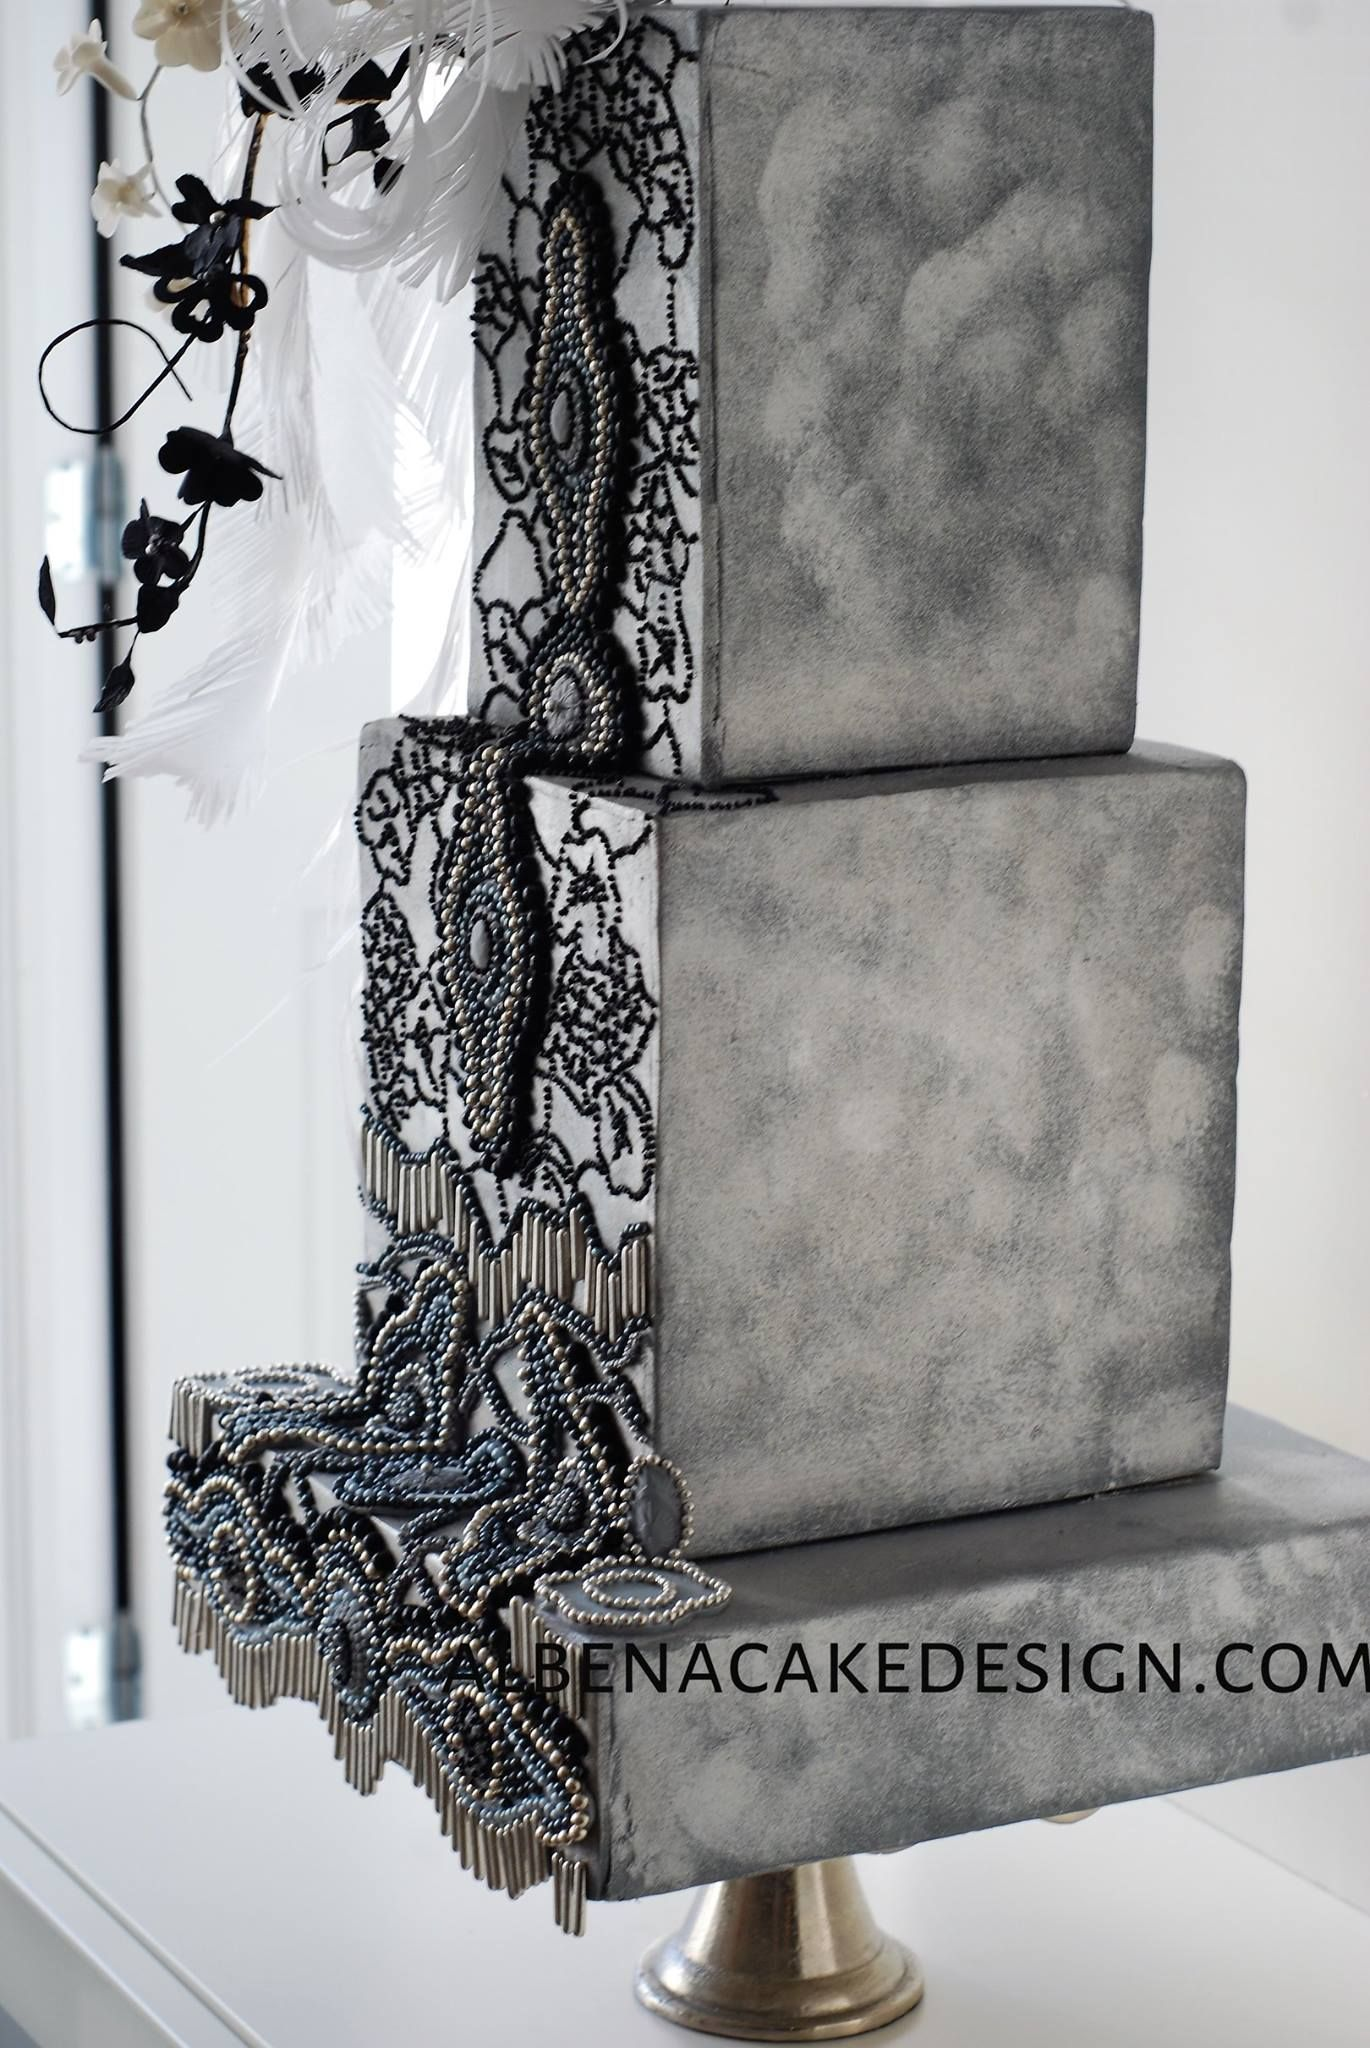 Watercolor gray wedding cake with lace appliqué on satinice